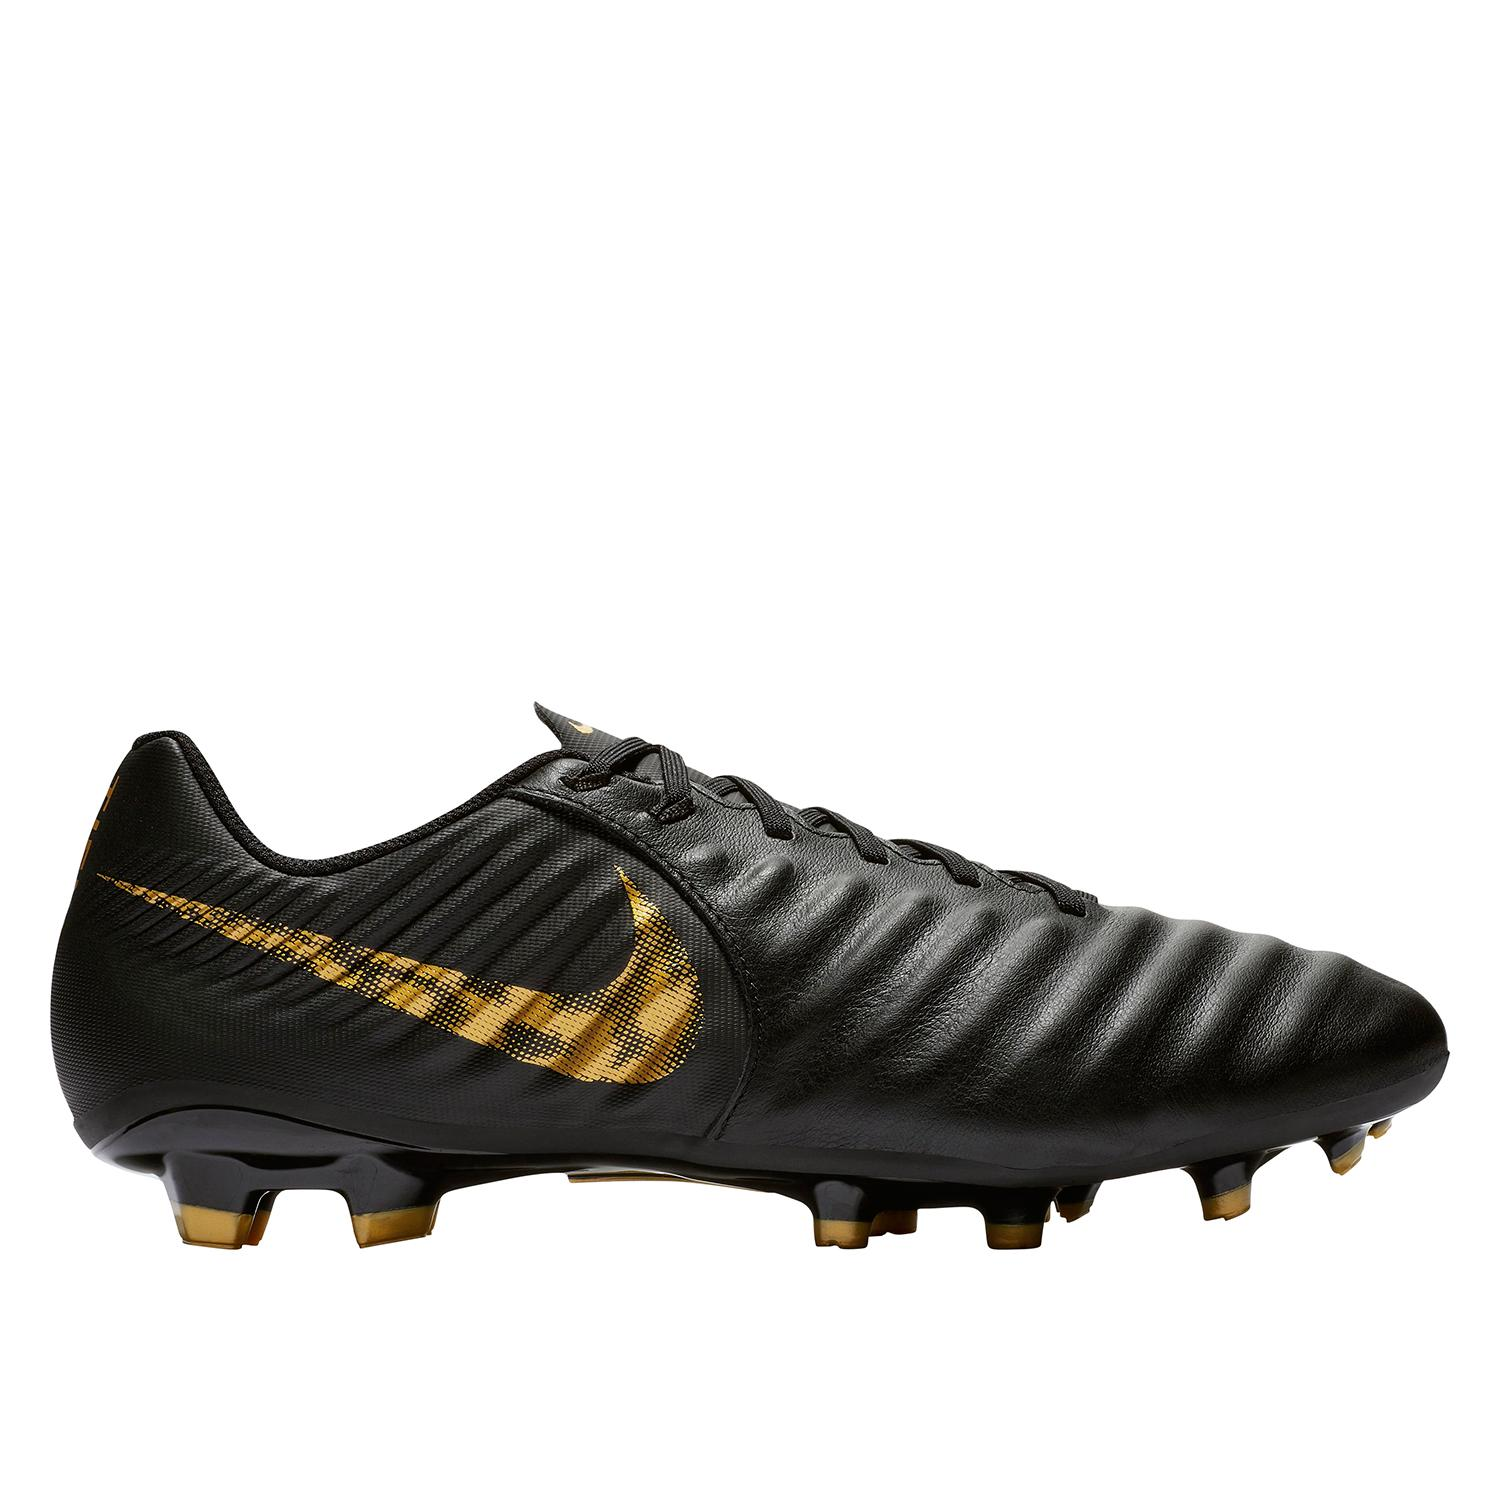 4f84a5dea Nike Tiempo Legend 7 Academy Firm Ground Men s Football Boot in ...